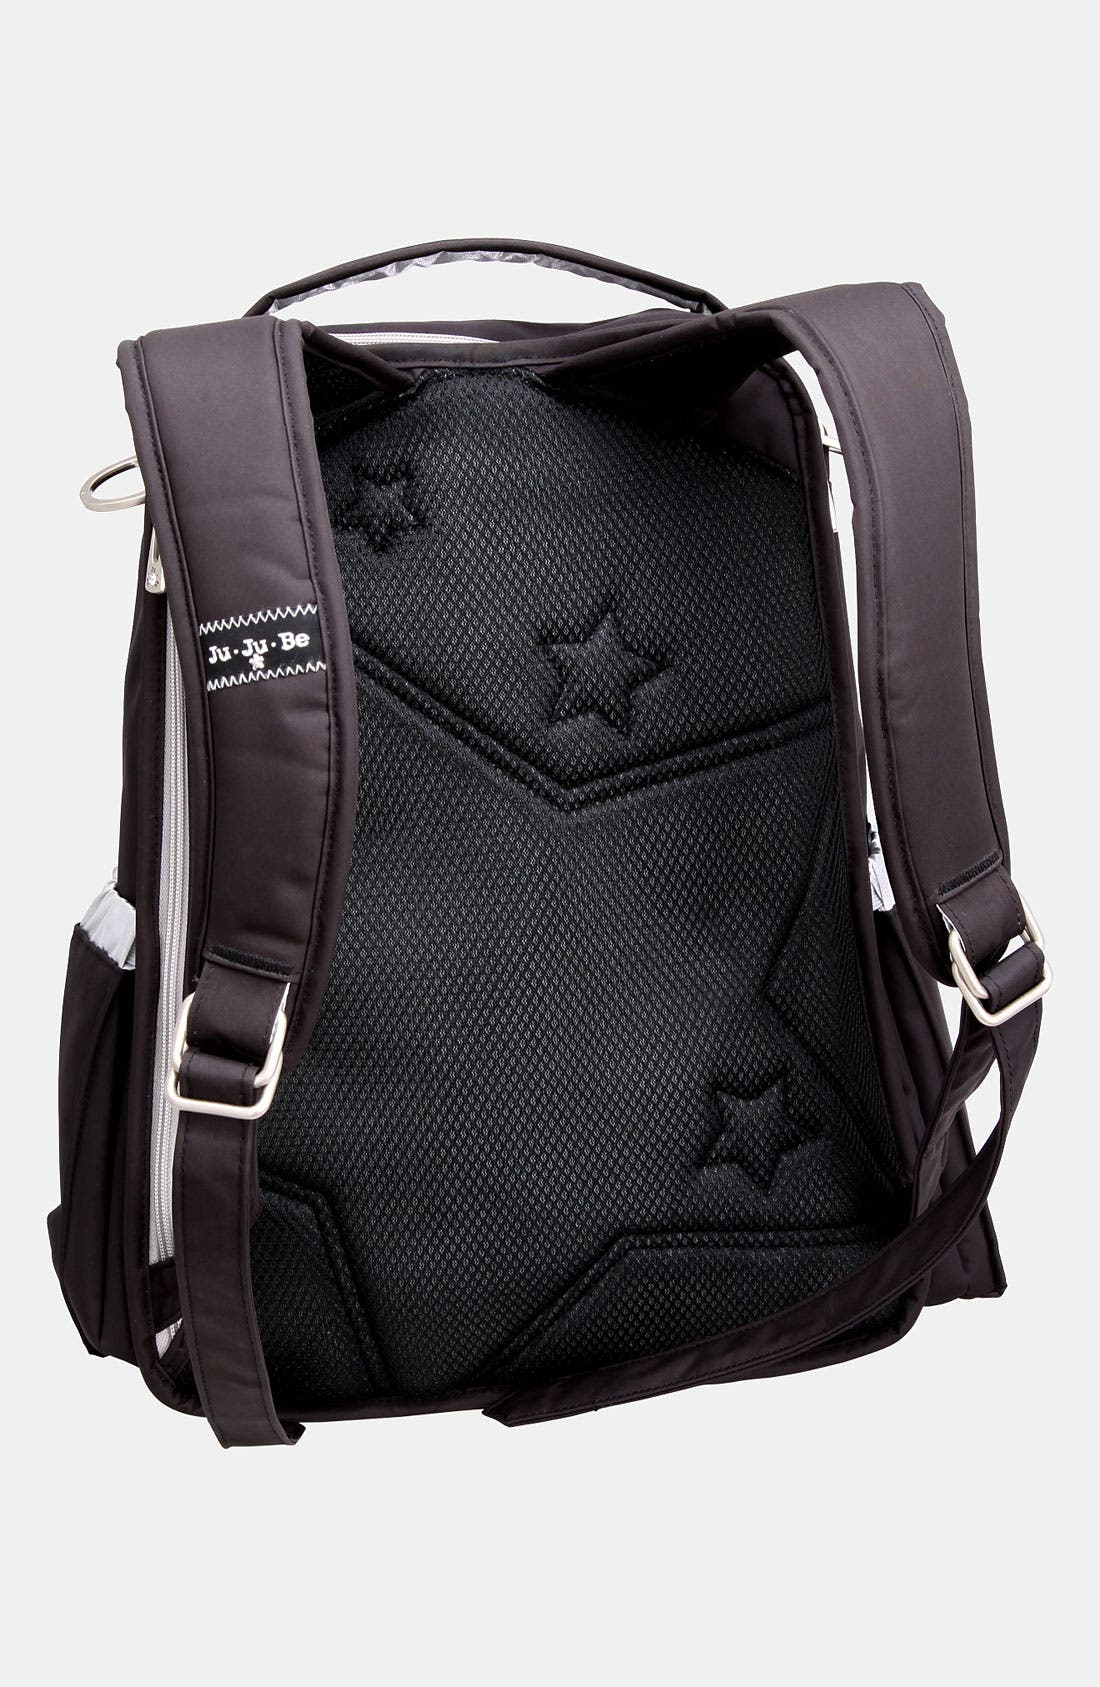 'Be Right Back' Diaper Backpack,                             Alternate thumbnail 75, color,